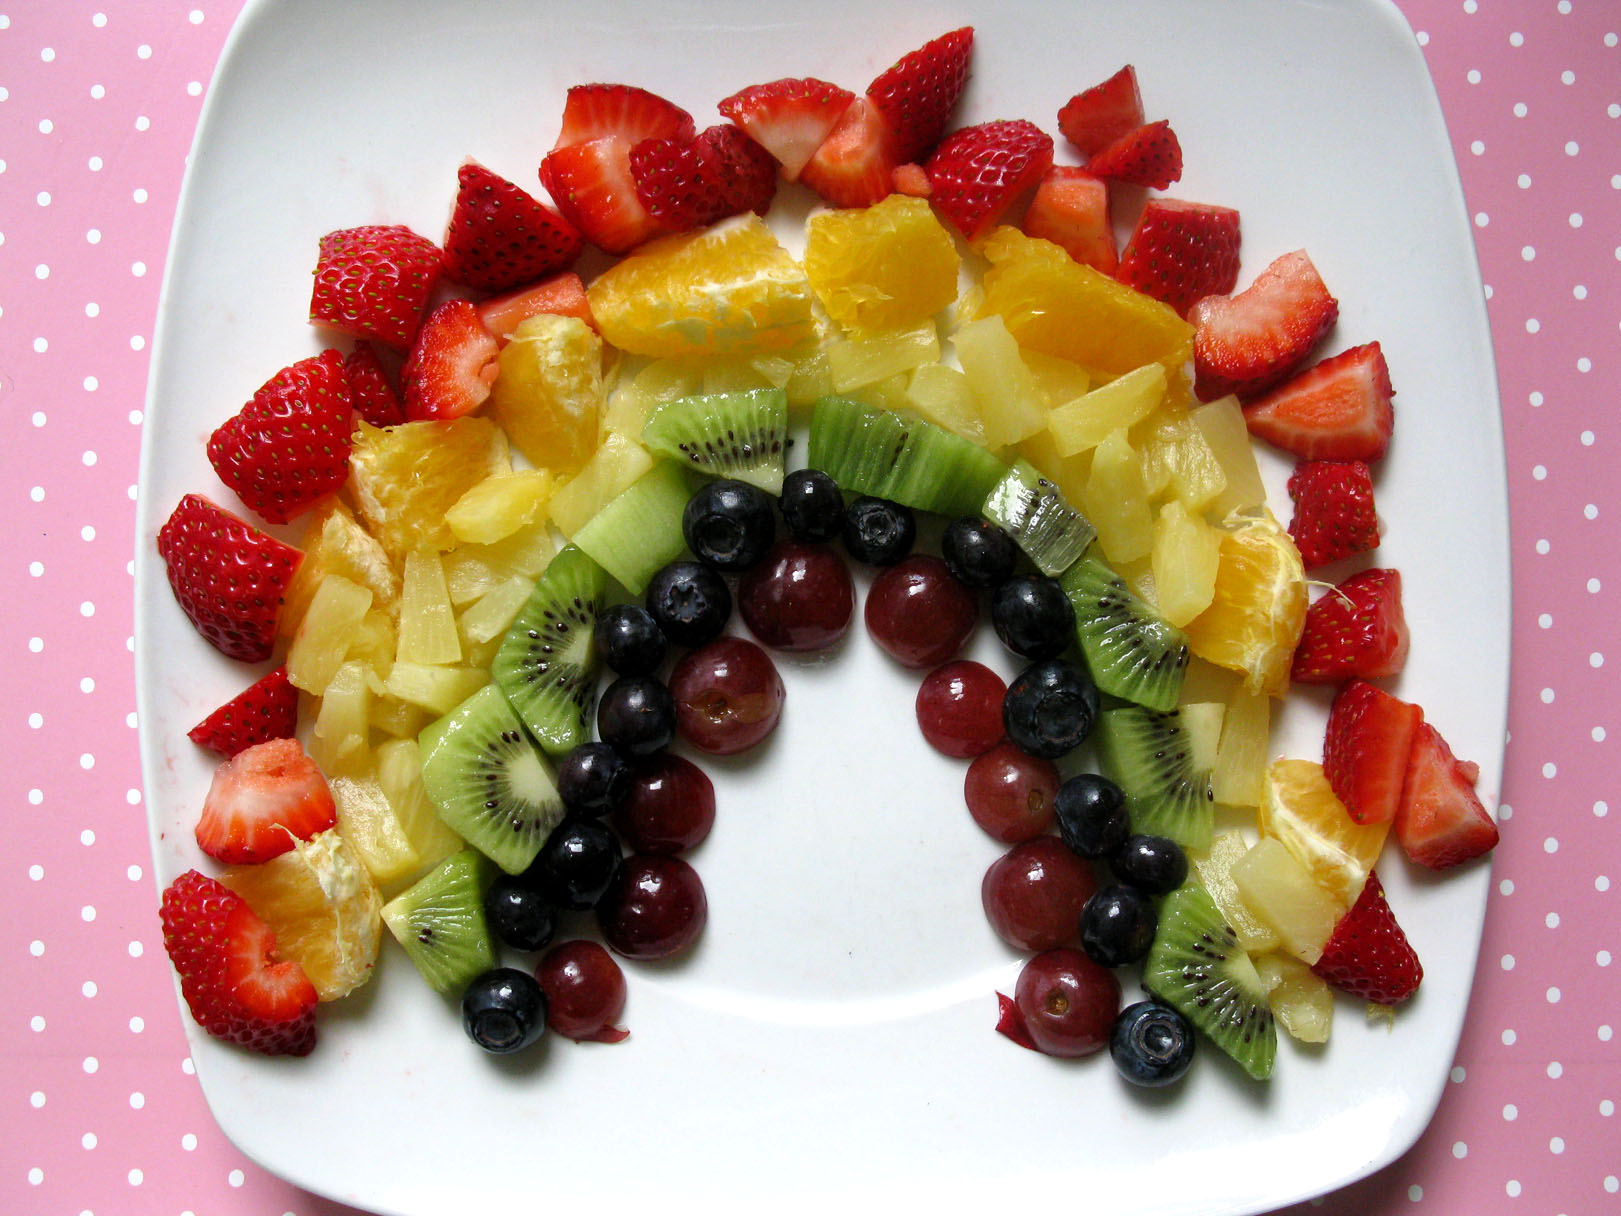 Fruit arranged by color helps young children learn the colors of the rainbow and the importance of eating a variety of colorful fruits. (Image from  livelearnloveeat.com .)